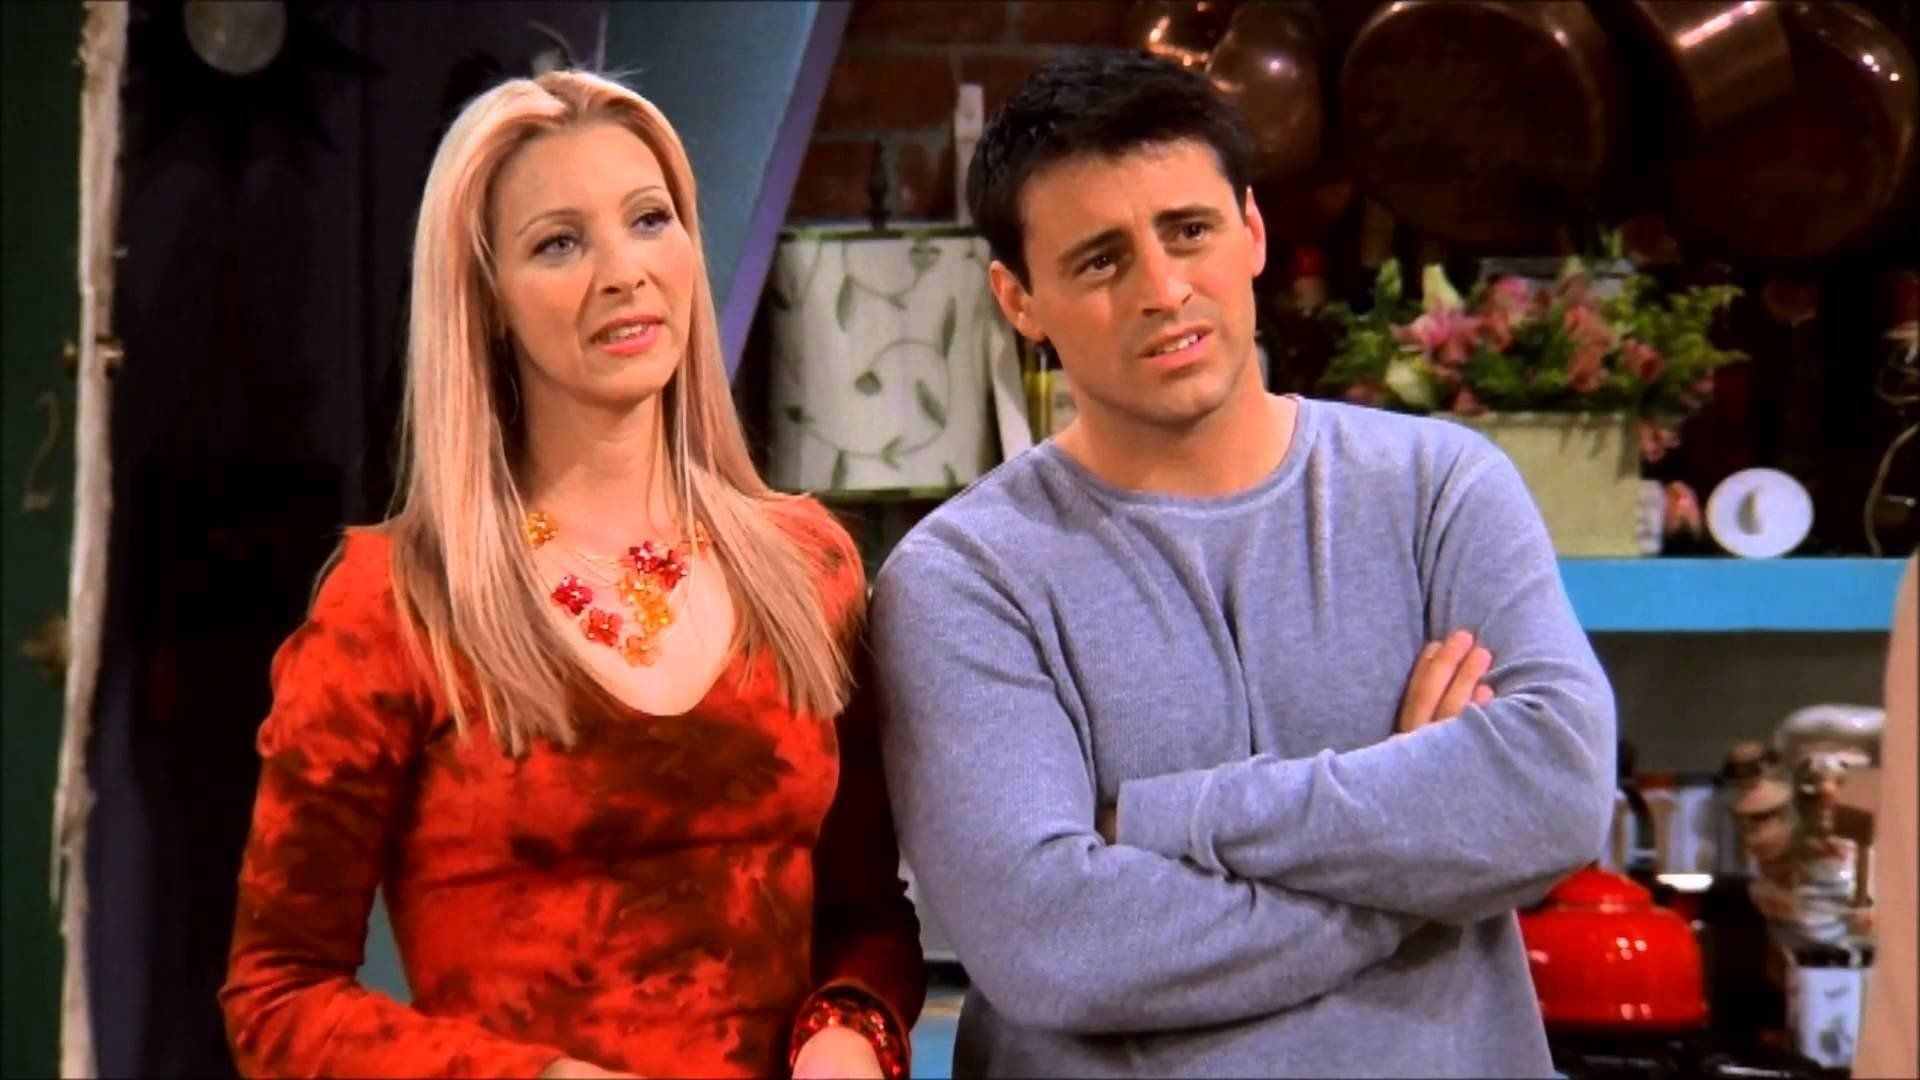 And Joey Ever Did Hook Up Phoebe undivided